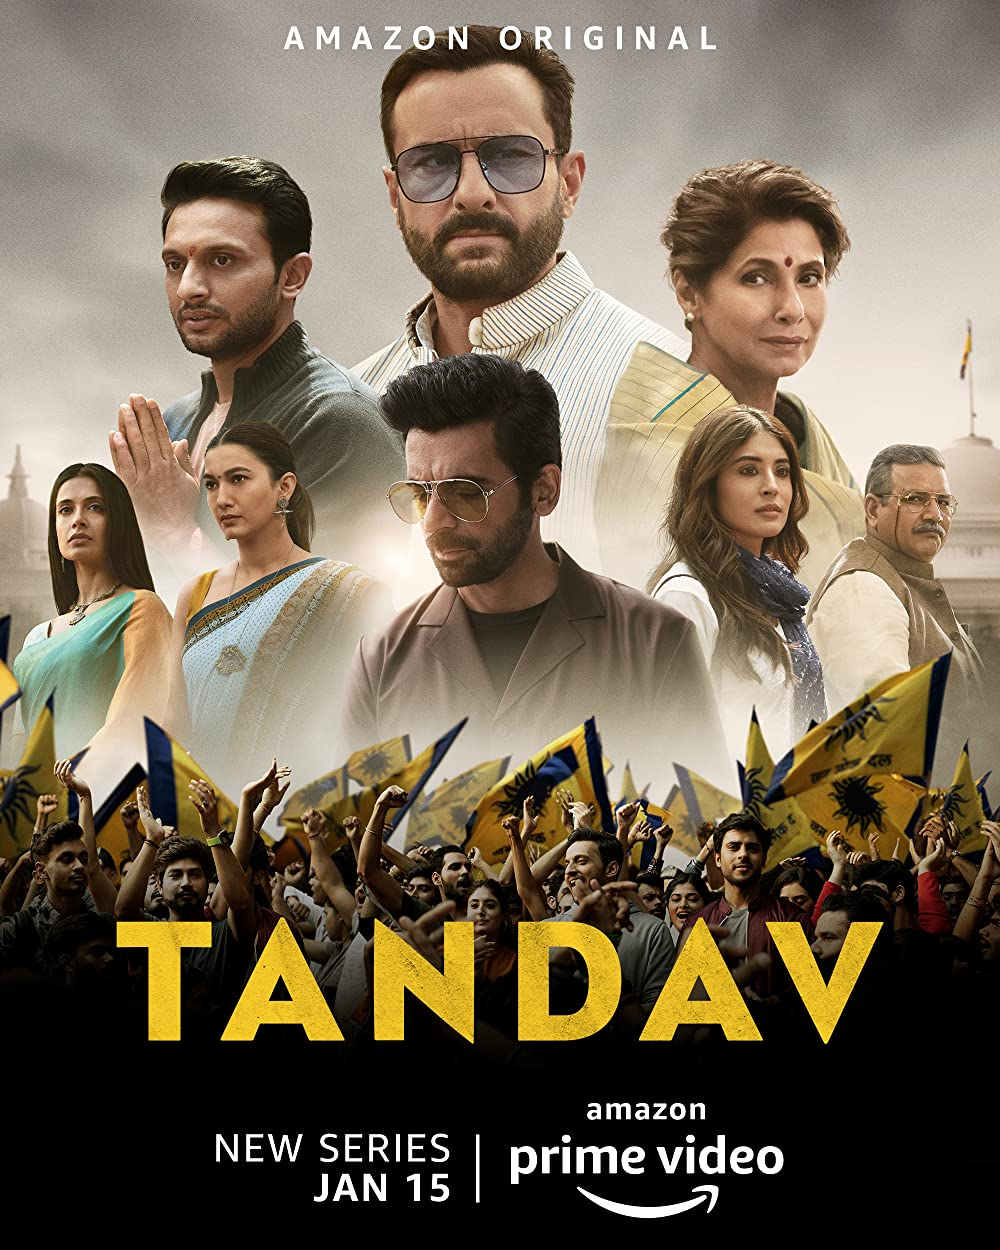 Tandav S01 (2021) Full movie Download 720p Worldfree4u